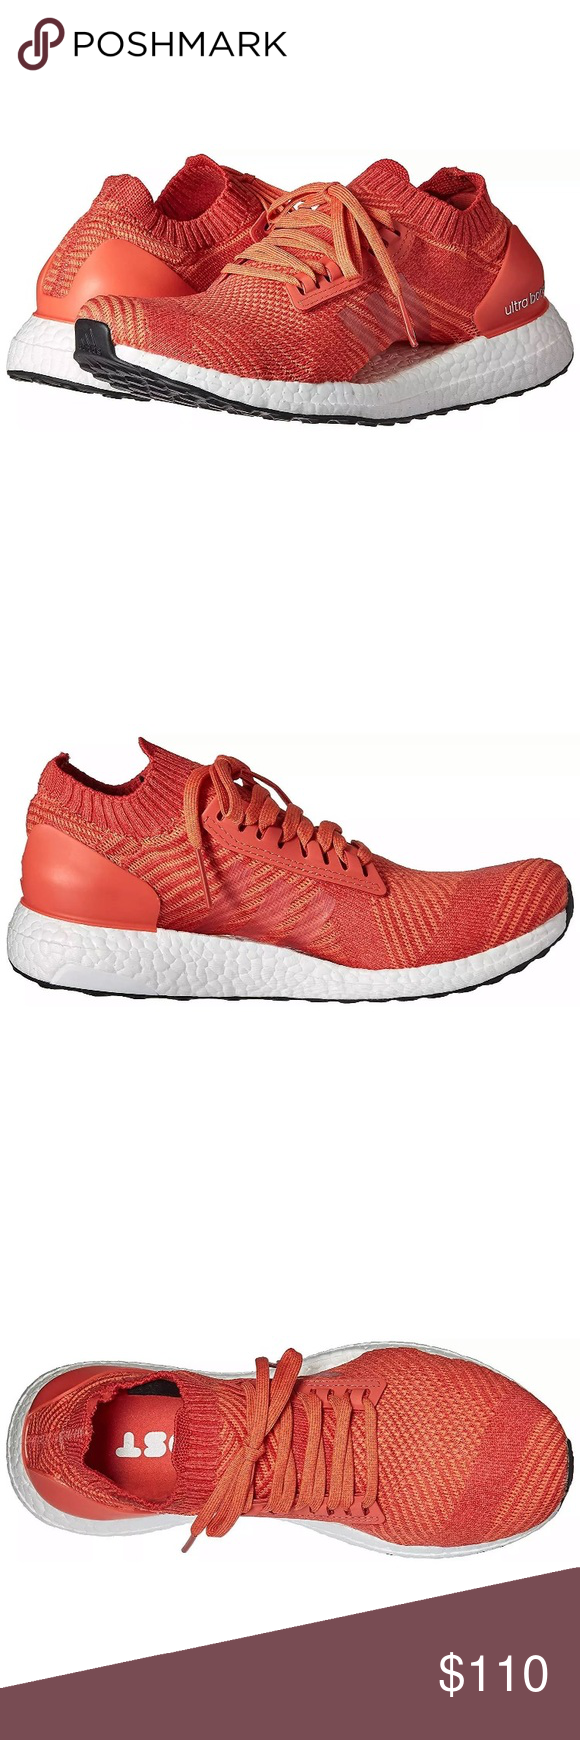 f3e81107d Adidas Women s Ultraboost X BB6160 Size 8.5 Adidas Shoes Great Holiday gift  Fast shipping item arrives no later than 3 days Great price Please order  before ...